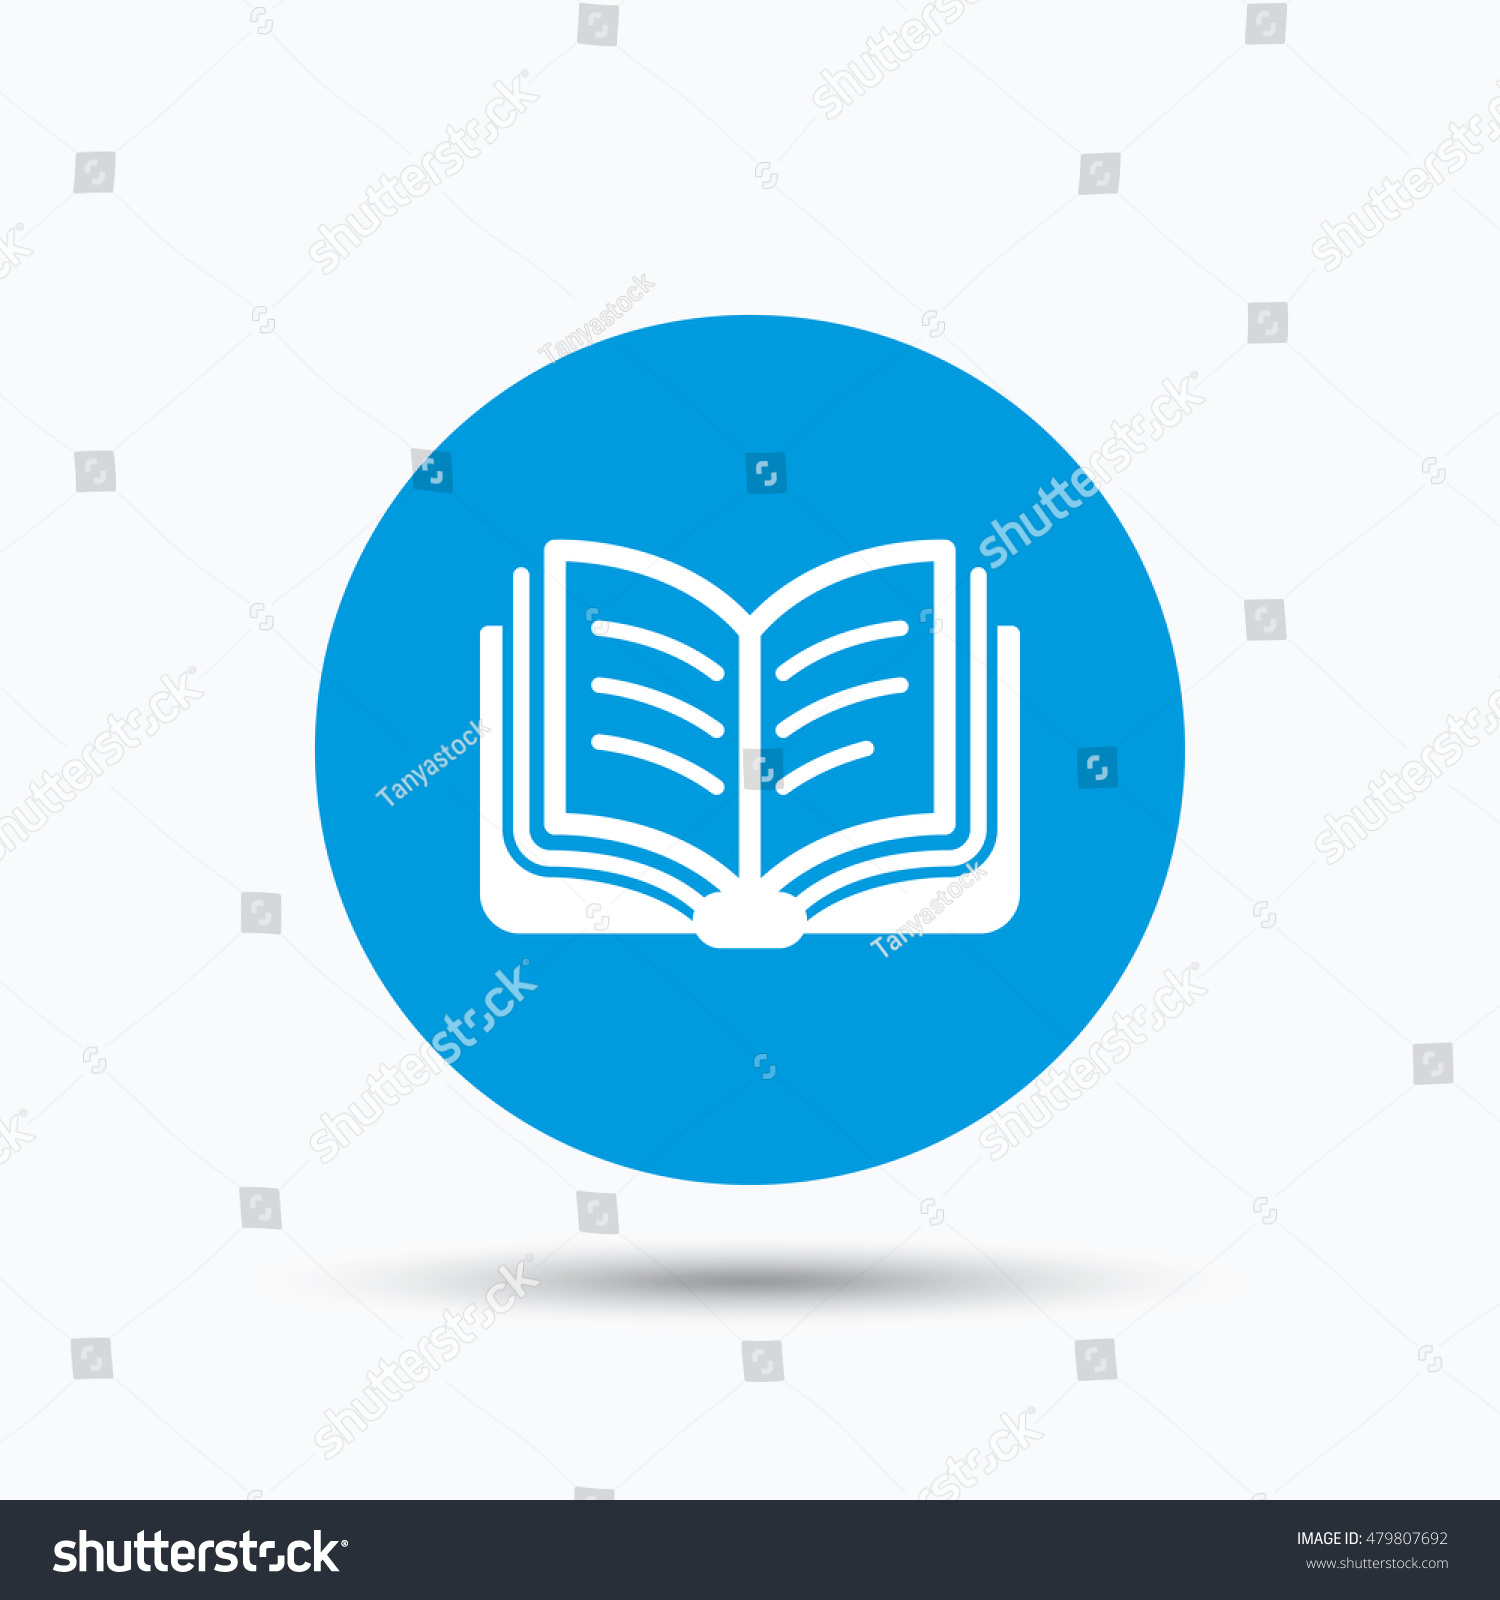 book icon study literature sign education stock vector  study literature sign education textbook symbol blue circle button flat